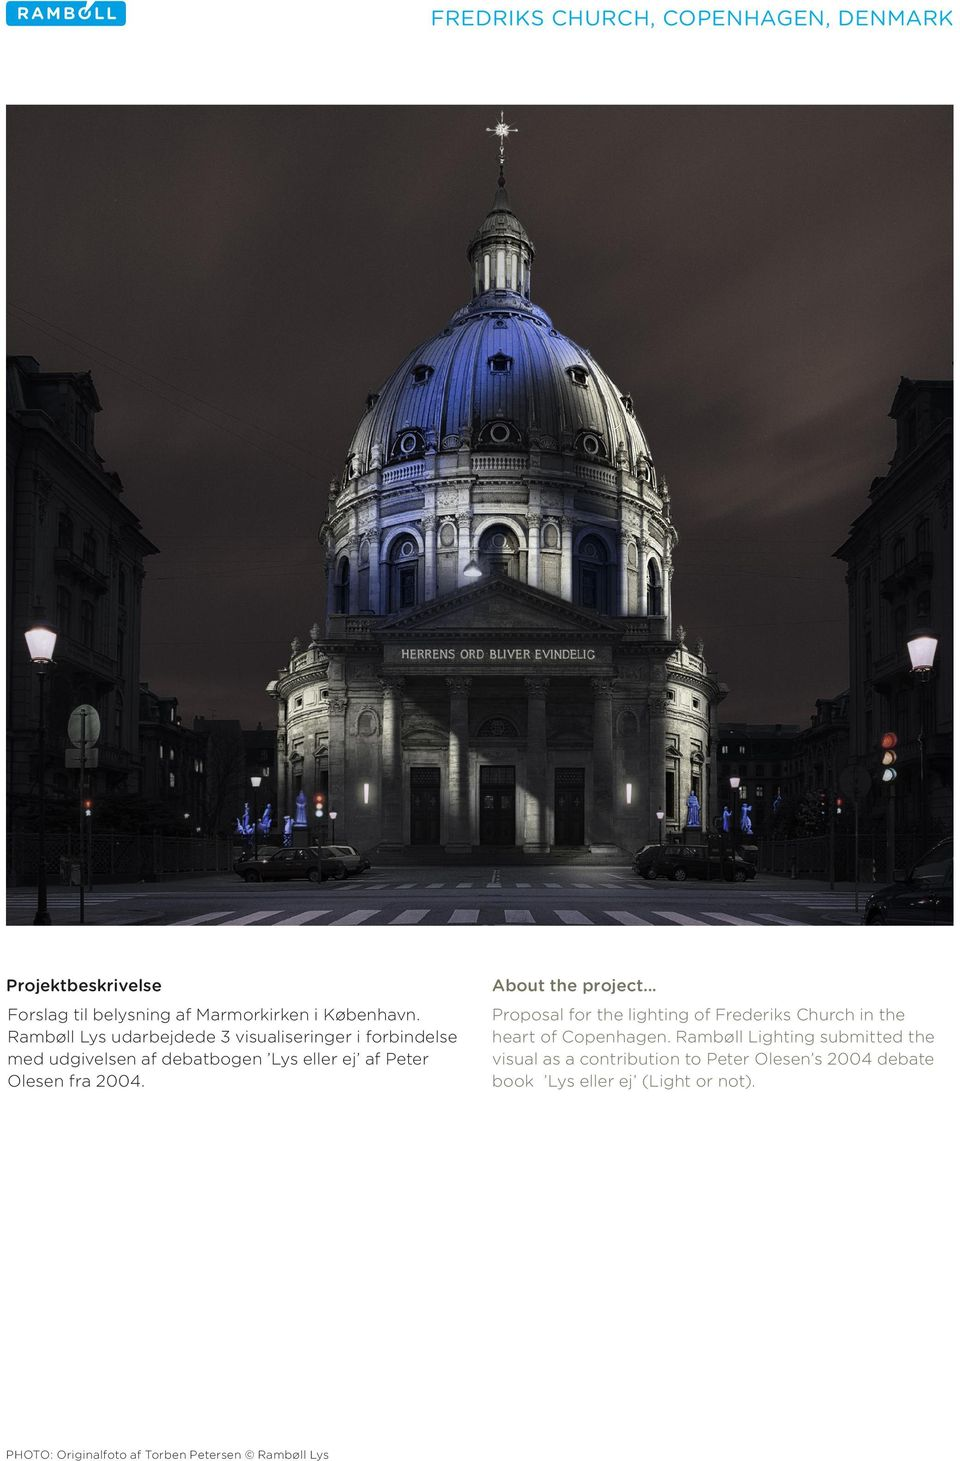 fra 2004. Proposal for the lighting of Frederiks Church in the heart of Copenhagen.